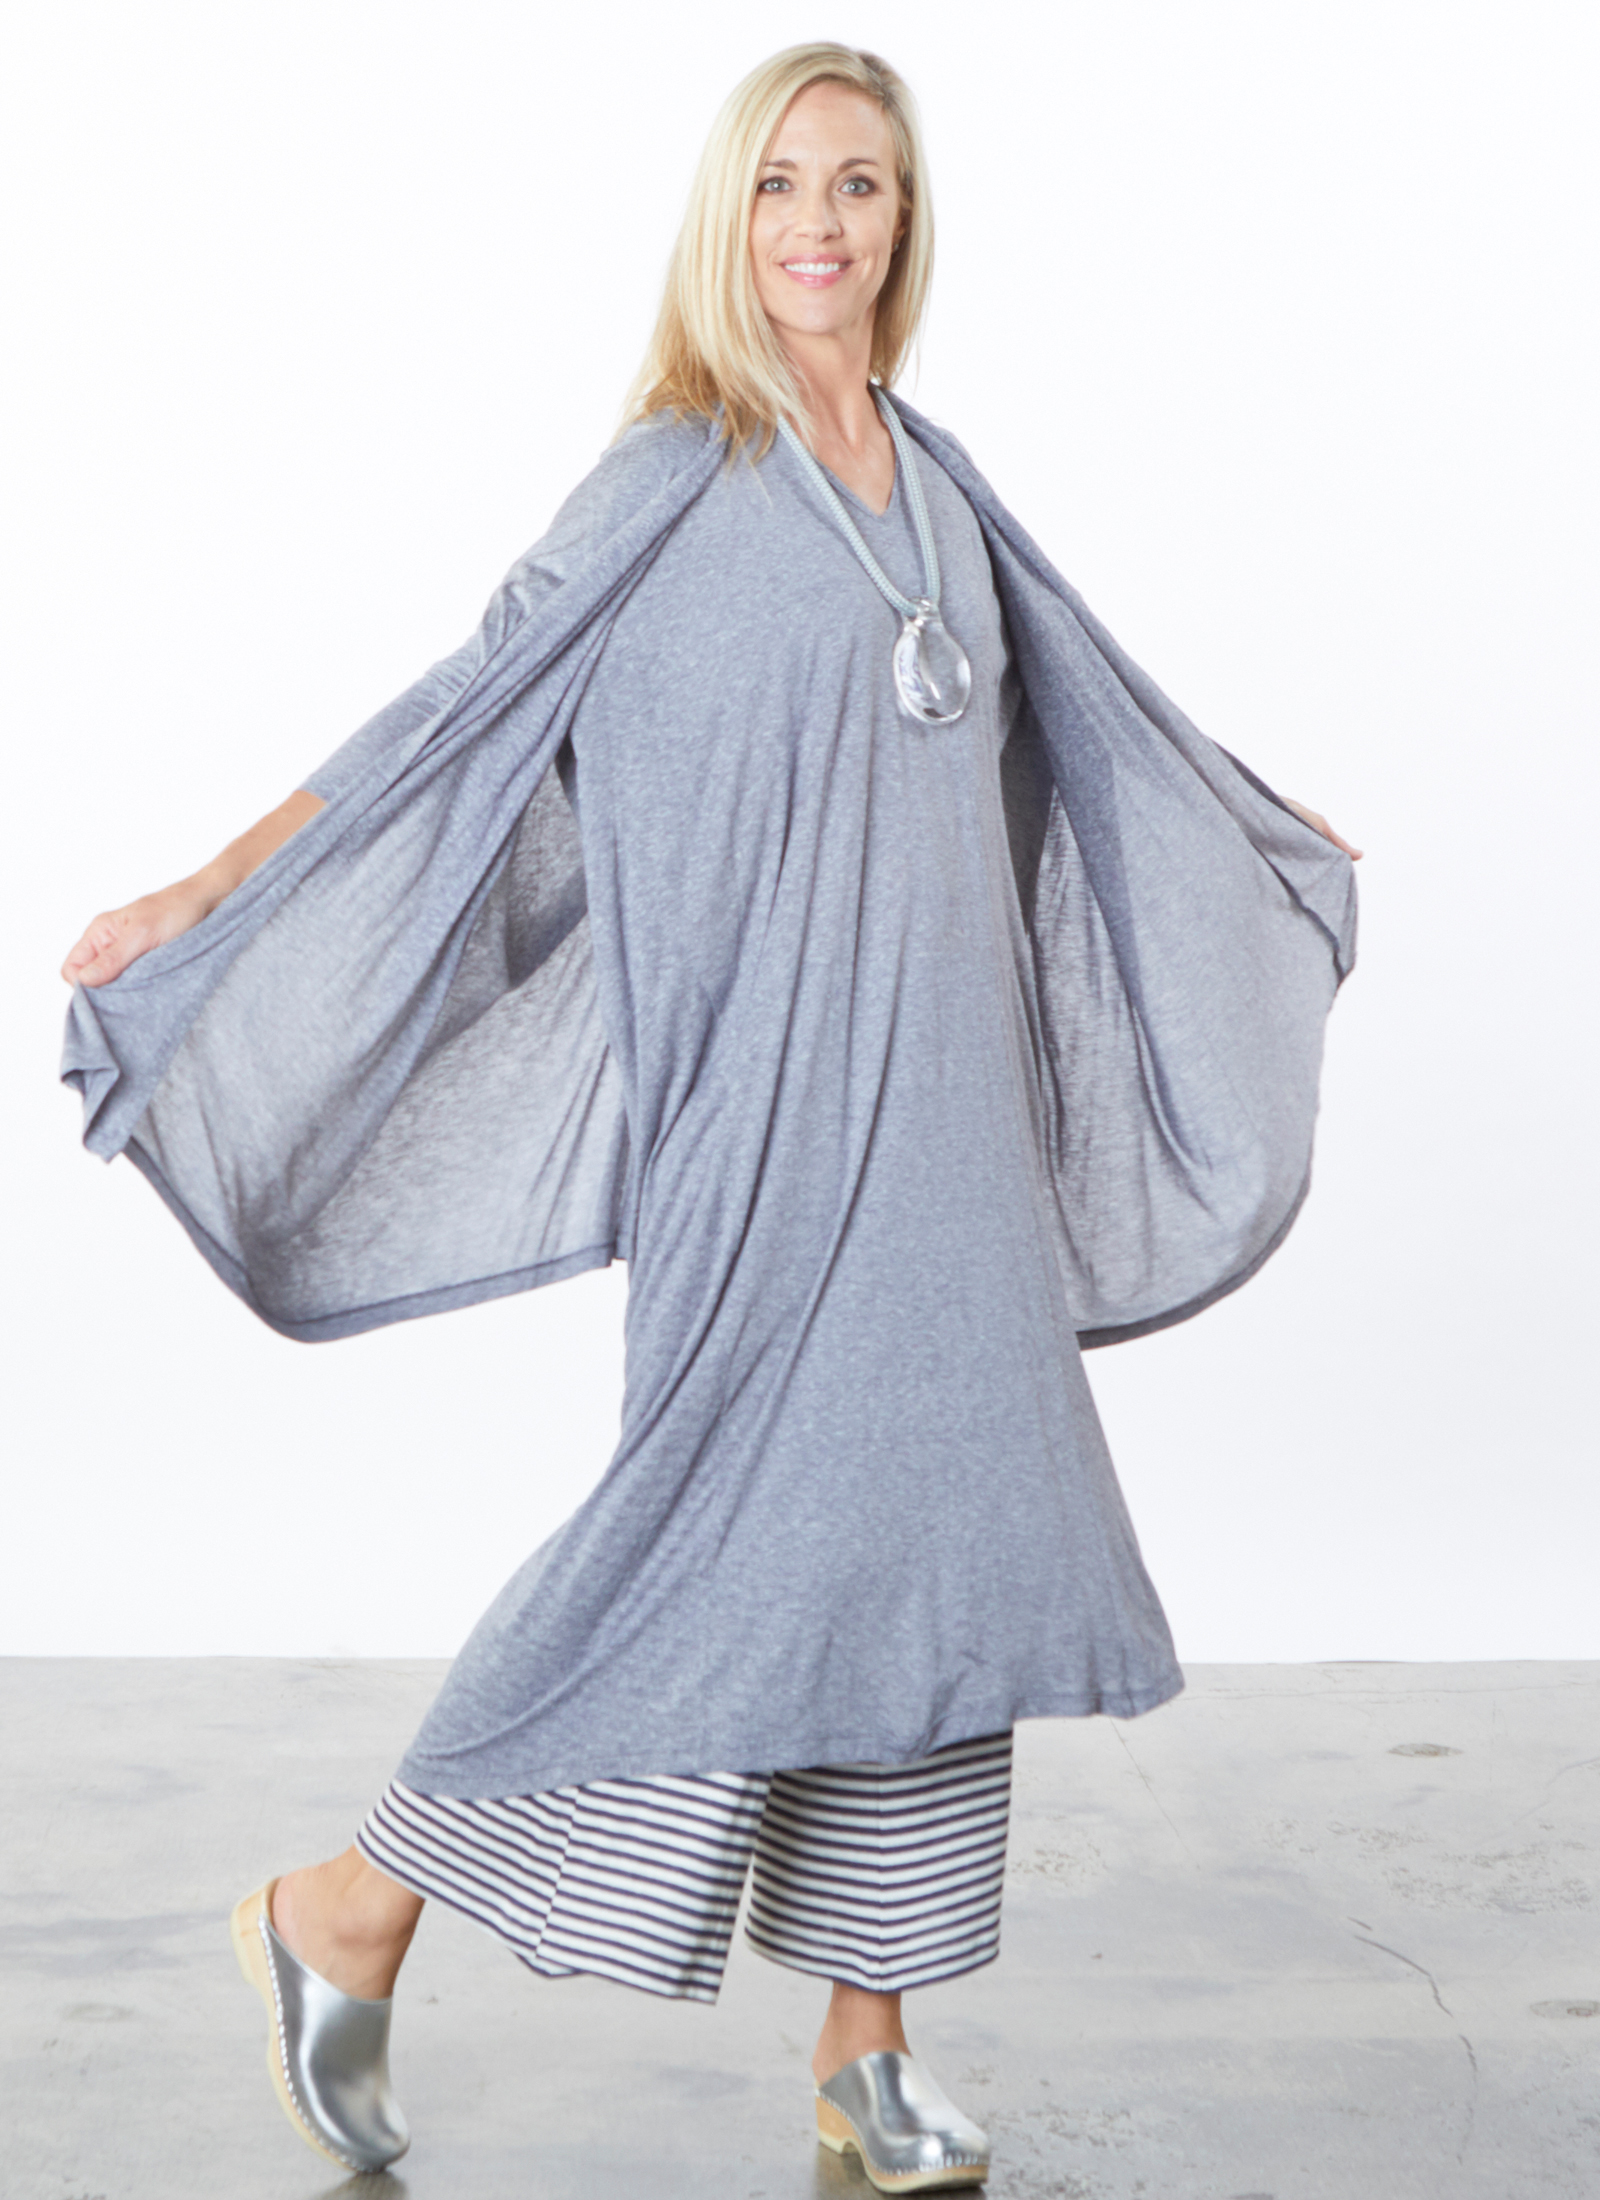 Stoker Cardigan, Renata Dress in Mini Stripe, Ella Pant in Silk Viscose Stripe